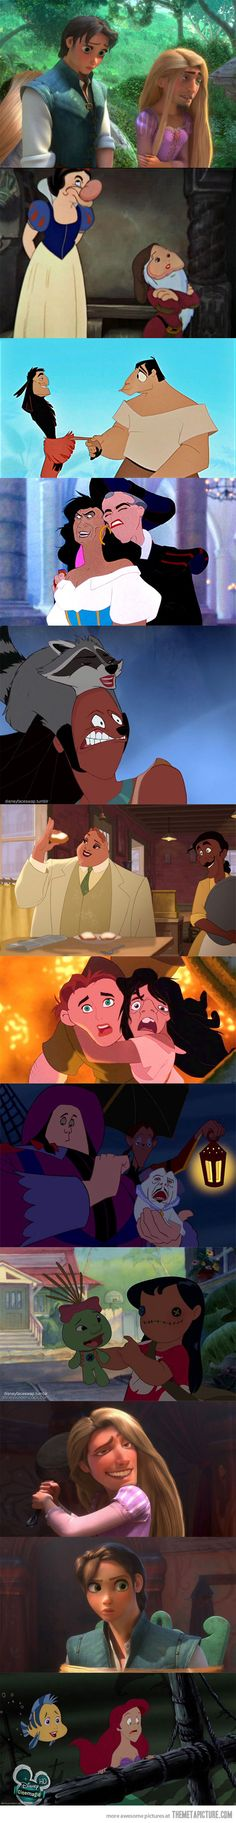 Best of  the Funny Disney Swap Faces. That Pocahontas one with the raccoon makes me want to pee myself